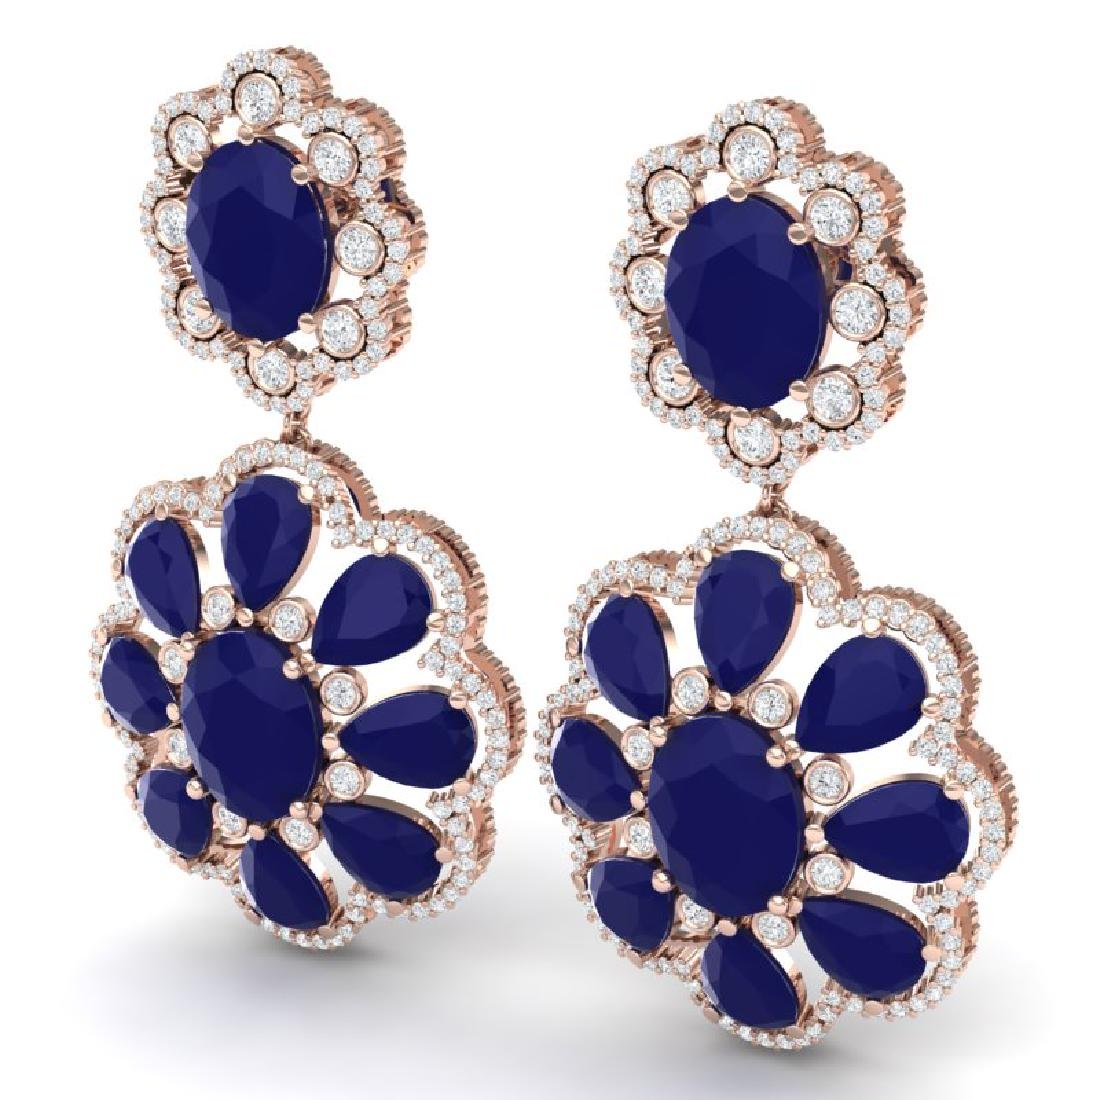 33.88 CTW Royalty Sapphire & VS Diamond Earrings 18K - 2